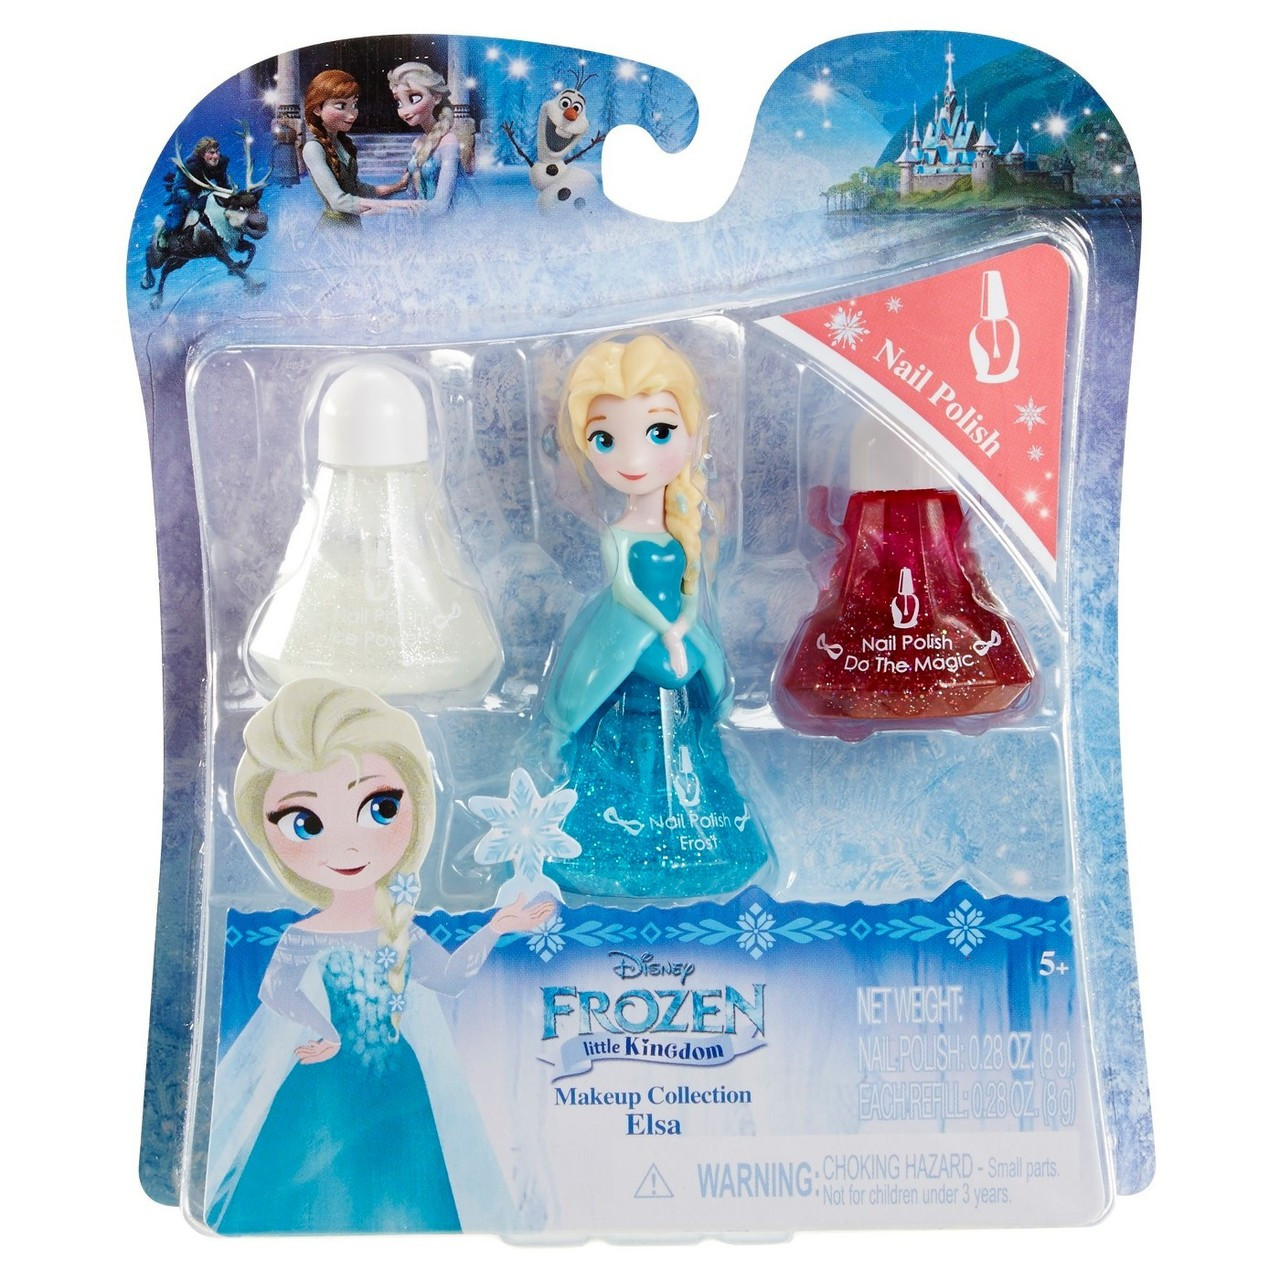 Disney Princess/Frozen Little Kingdom Makeup Sets Assorted